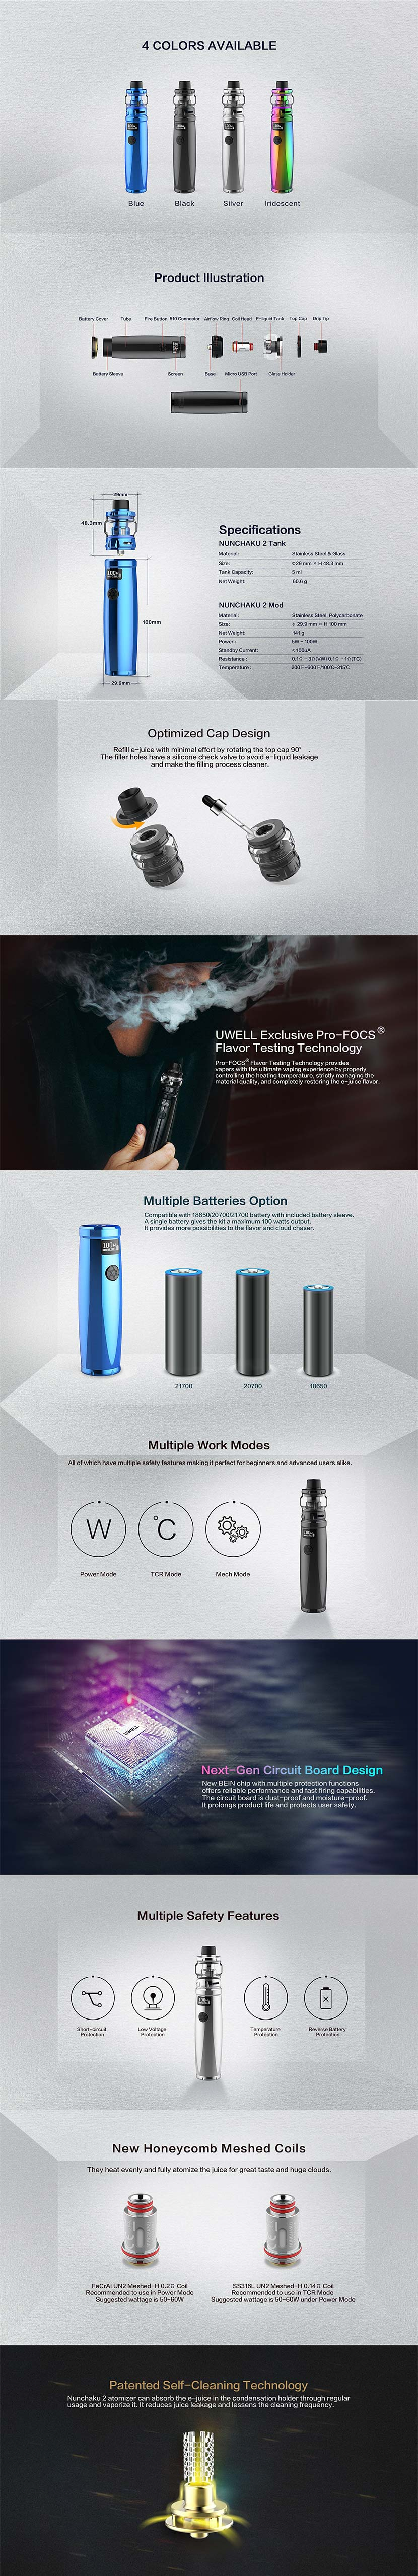 Uwell Nunchaku 2 Features and Specifications